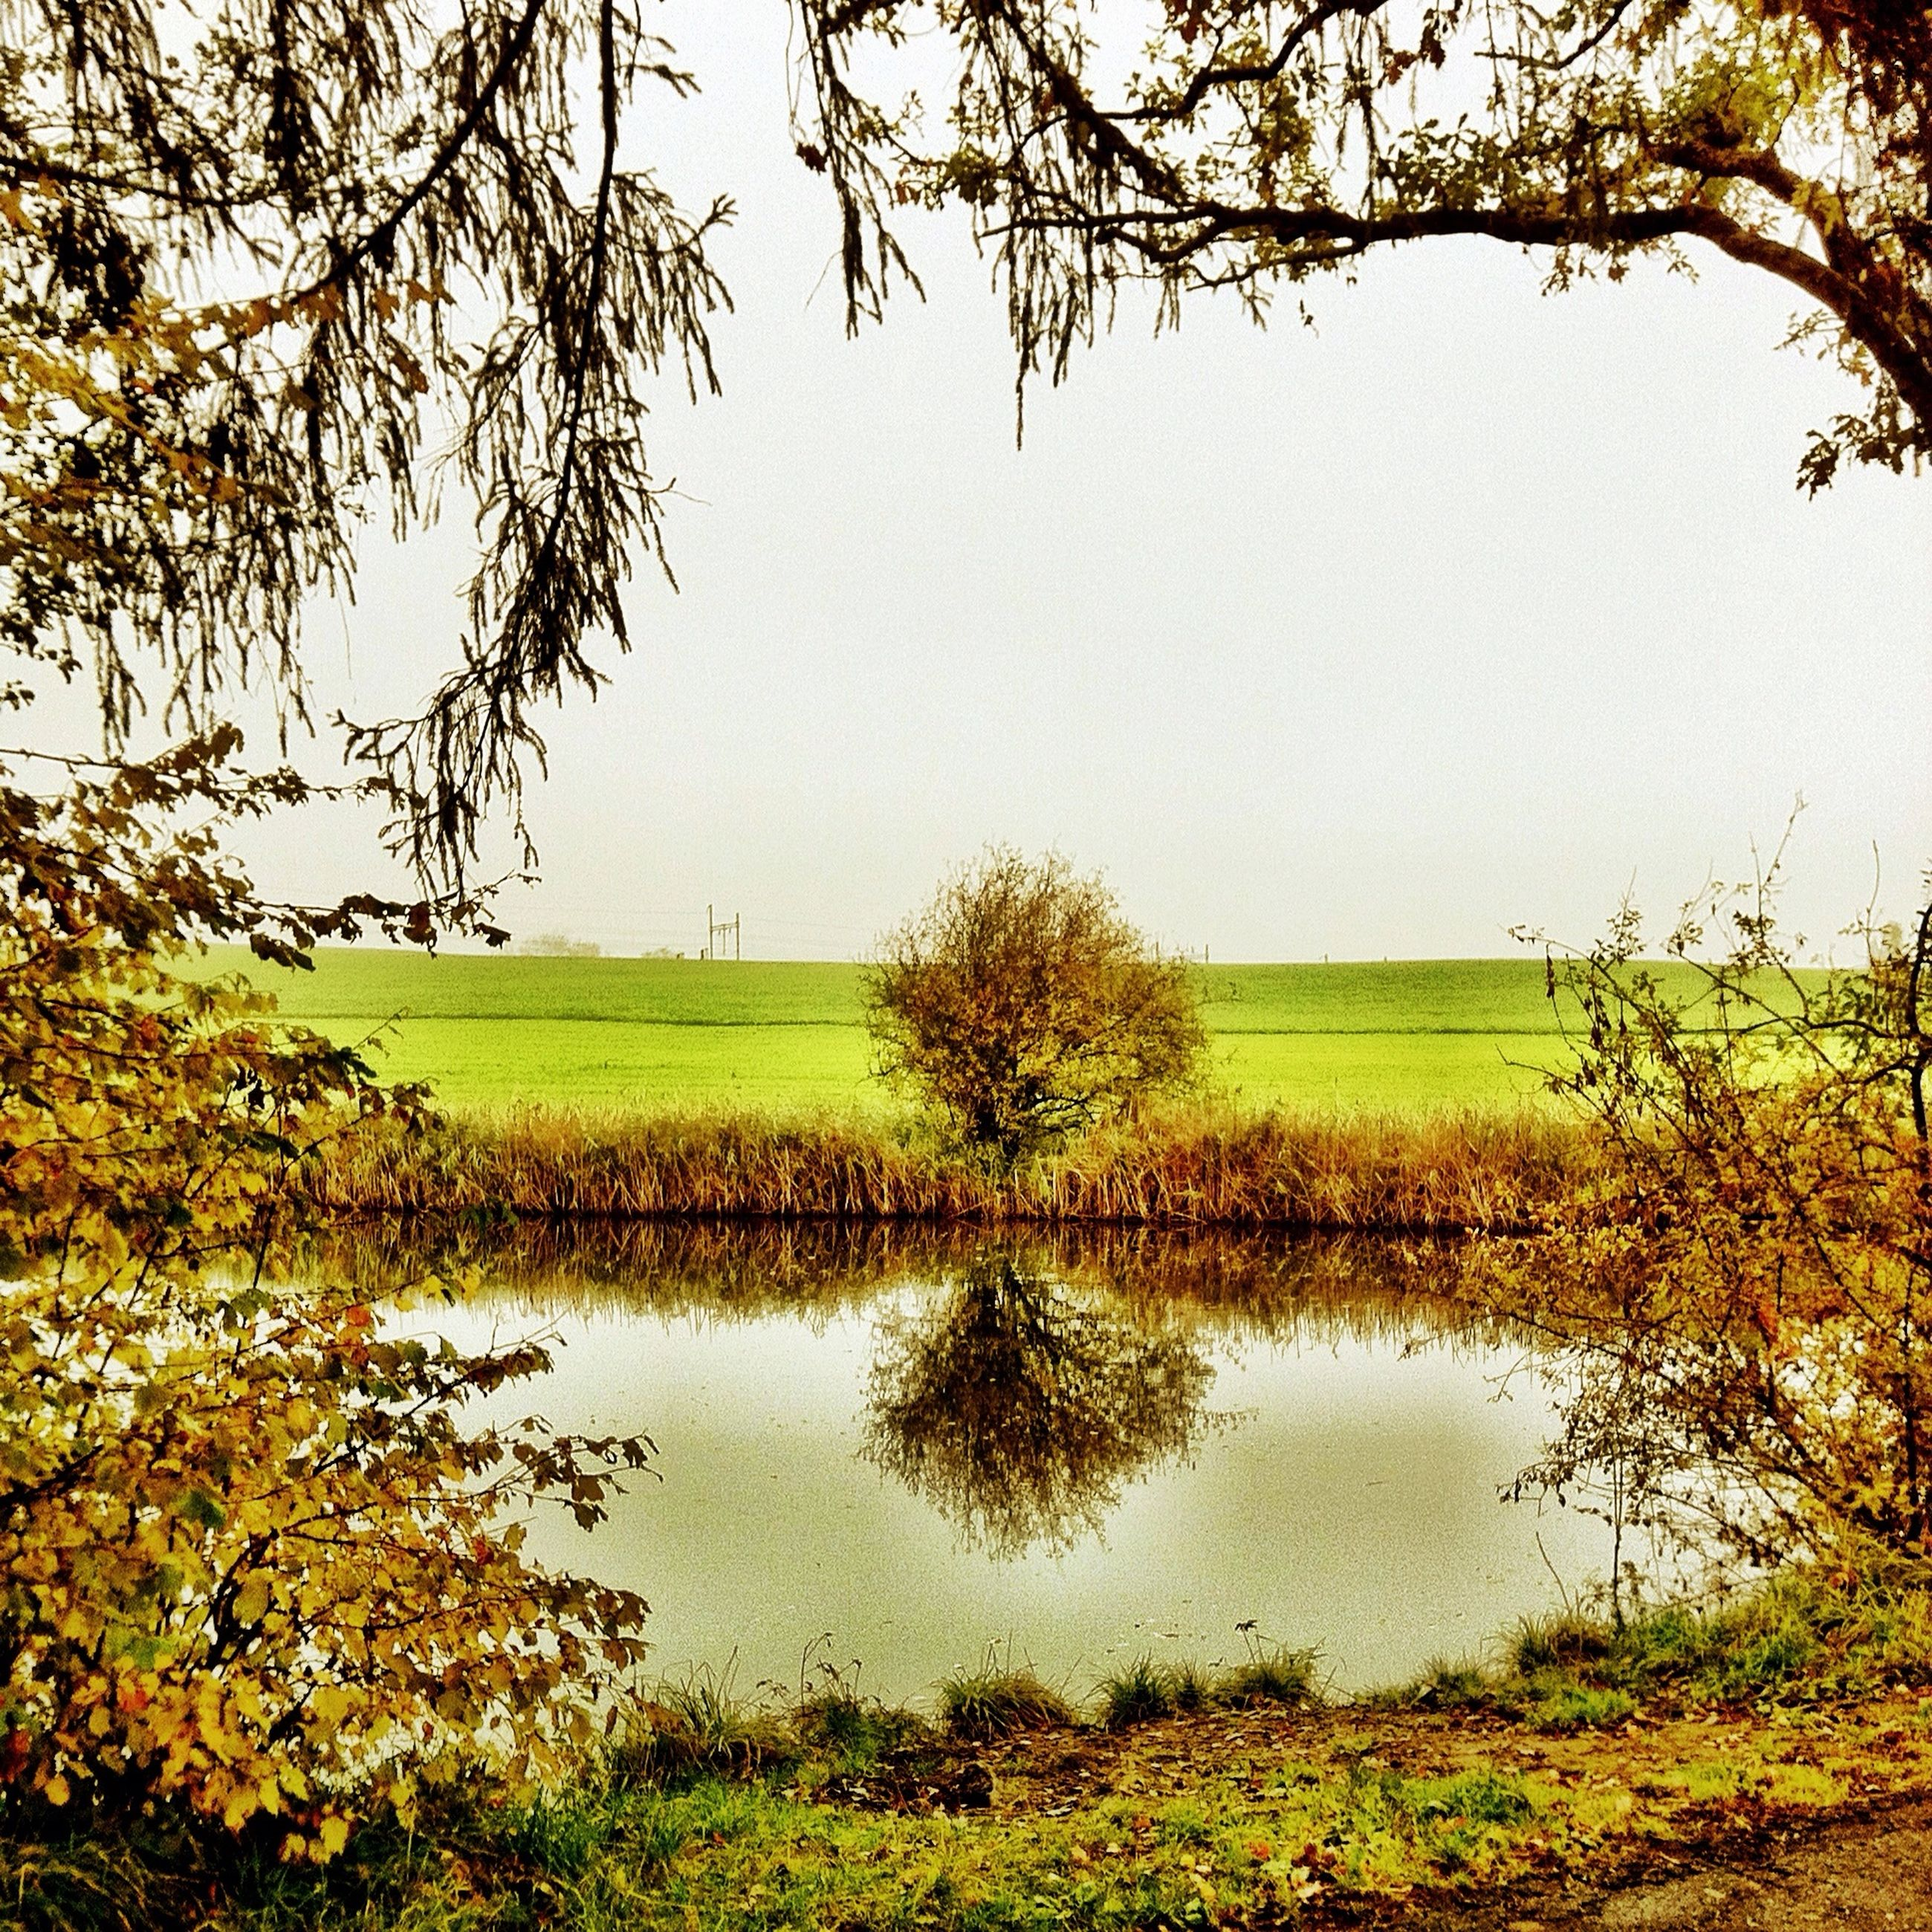 tranquil scene, tranquility, grass, water, clear sky, scenics, beauty in nature, tree, nature, growth, lake, landscape, reflection, field, green color, idyllic, plant, branch, sky, grassy